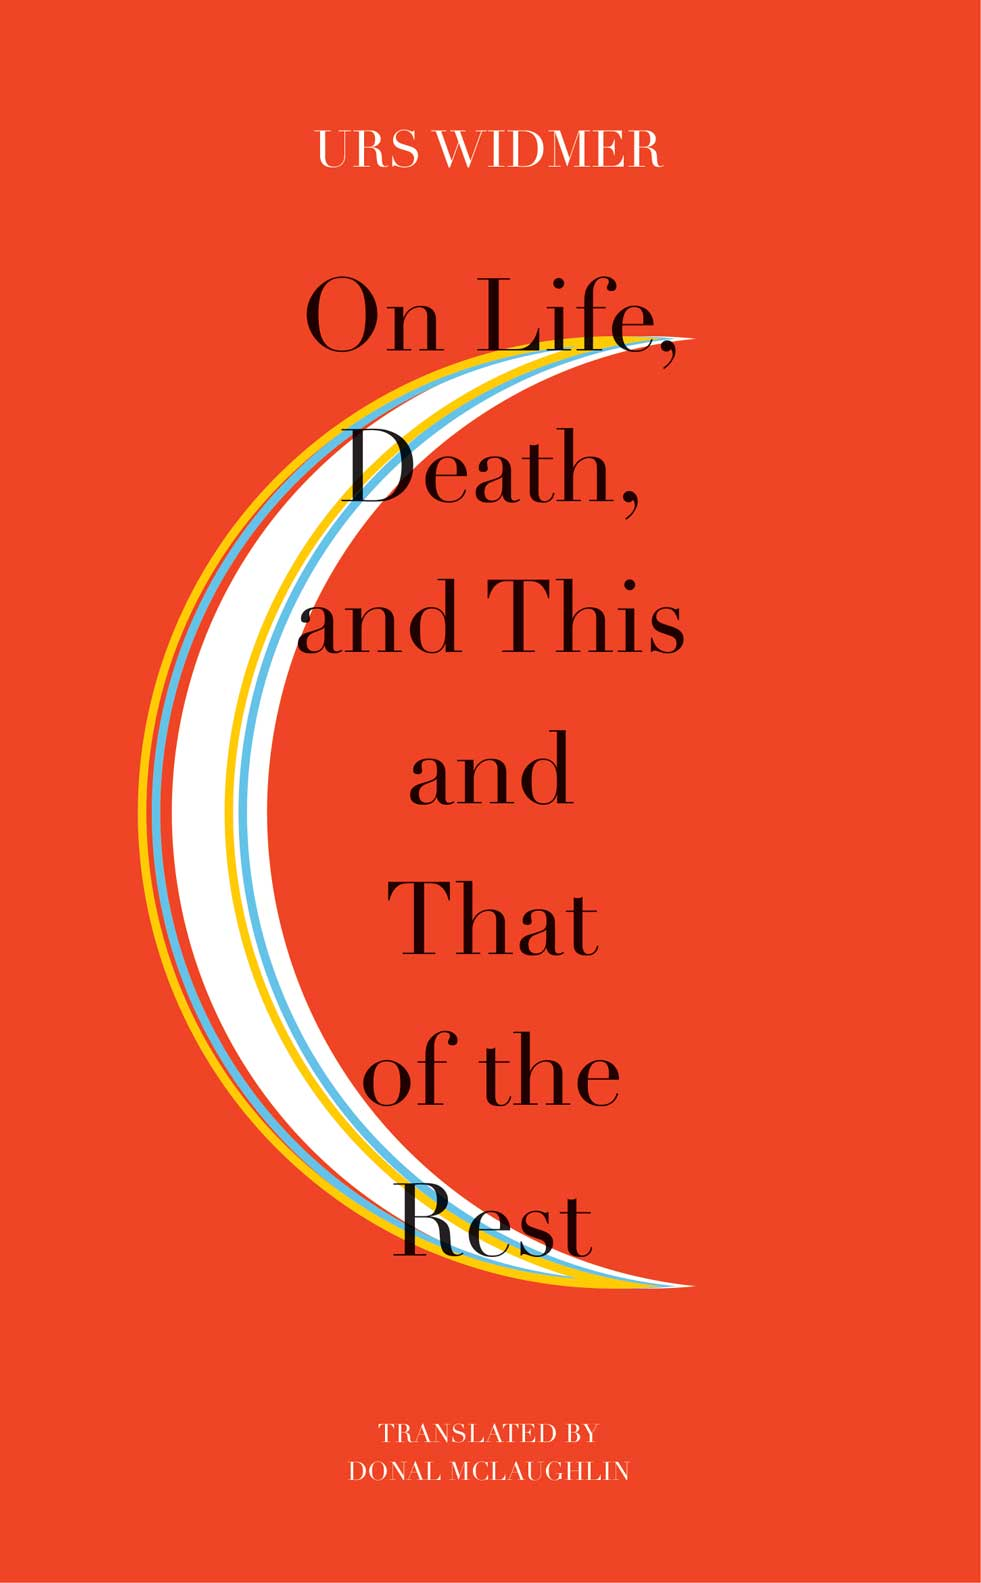 On Life, Death, and This and That of the Rest